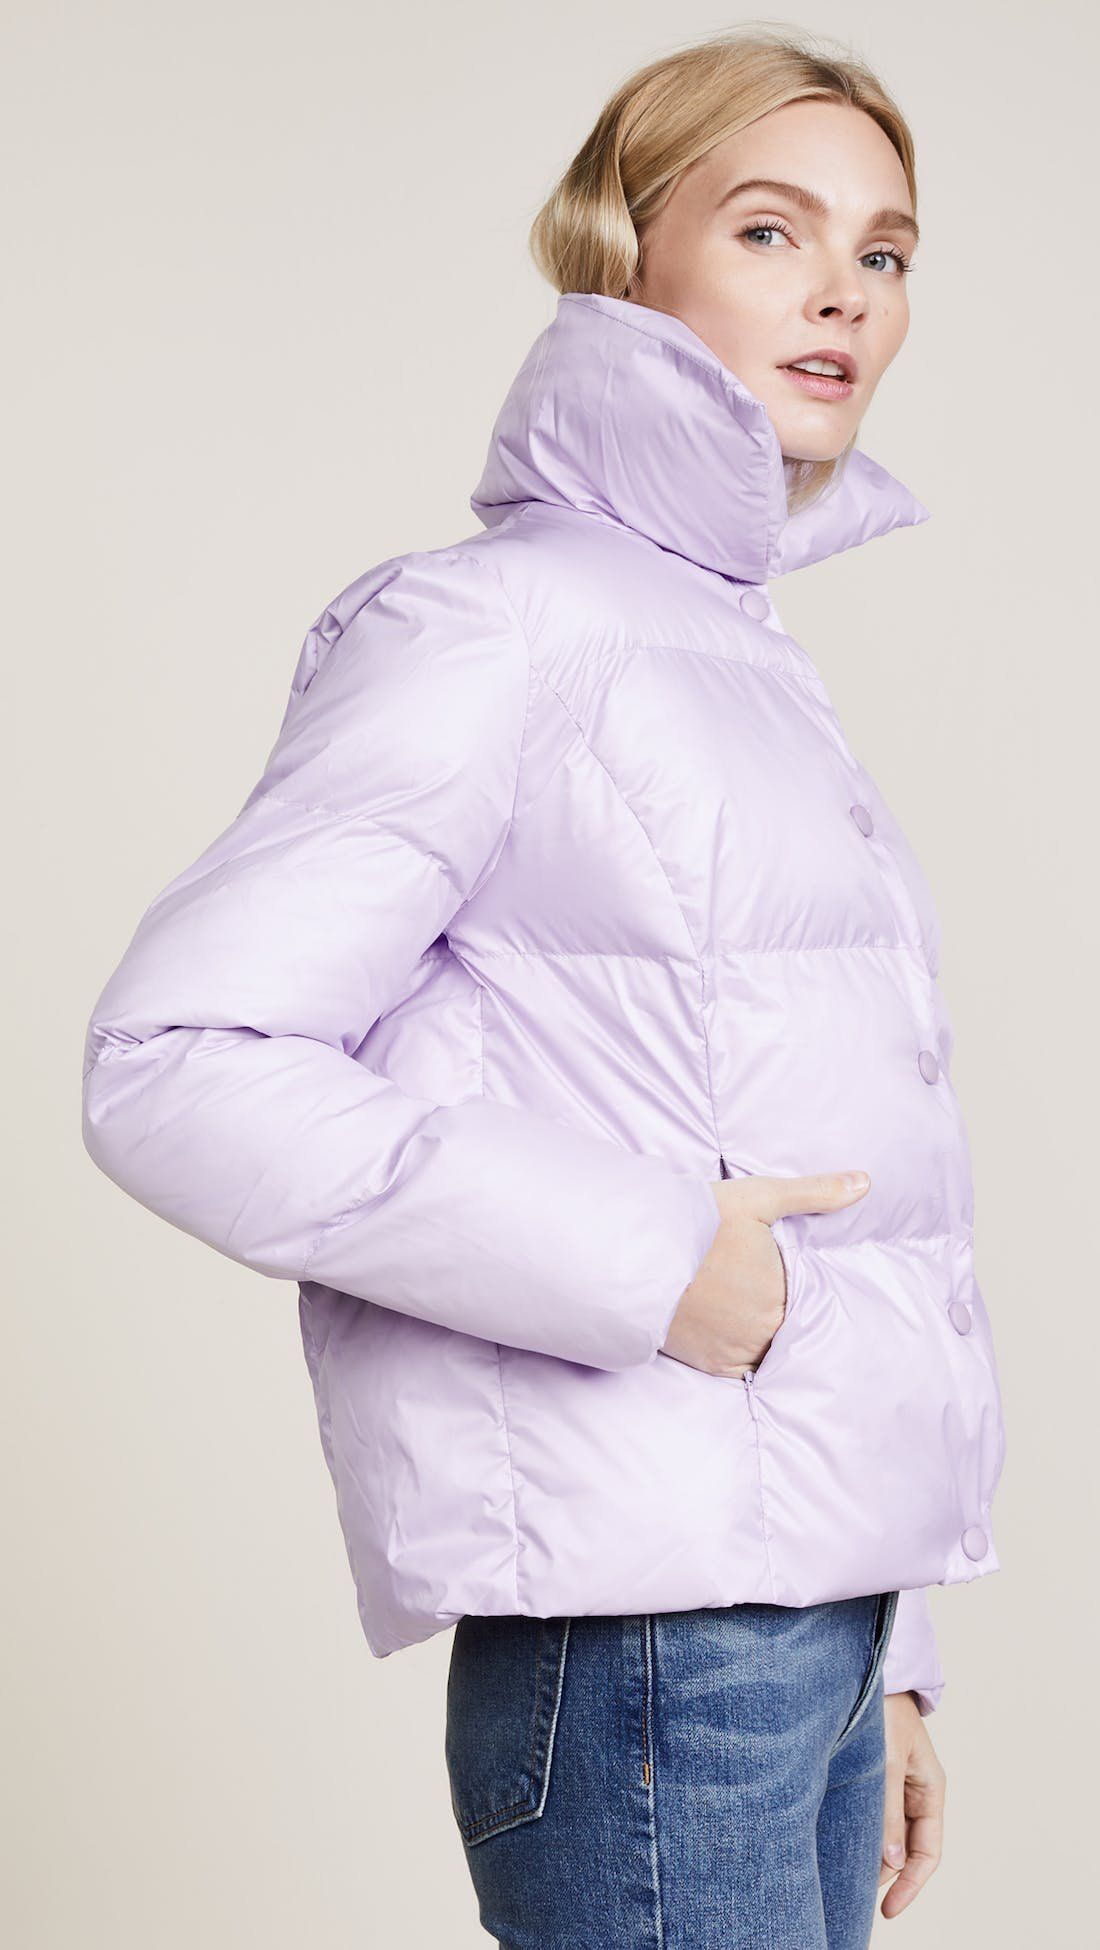 10 Puffer Jackets And Accessories That Won T Make You Look Ridiculous Puffer Coat Outfit Fashion Outerwear Women [ 1950 x 1100 Pixel ]